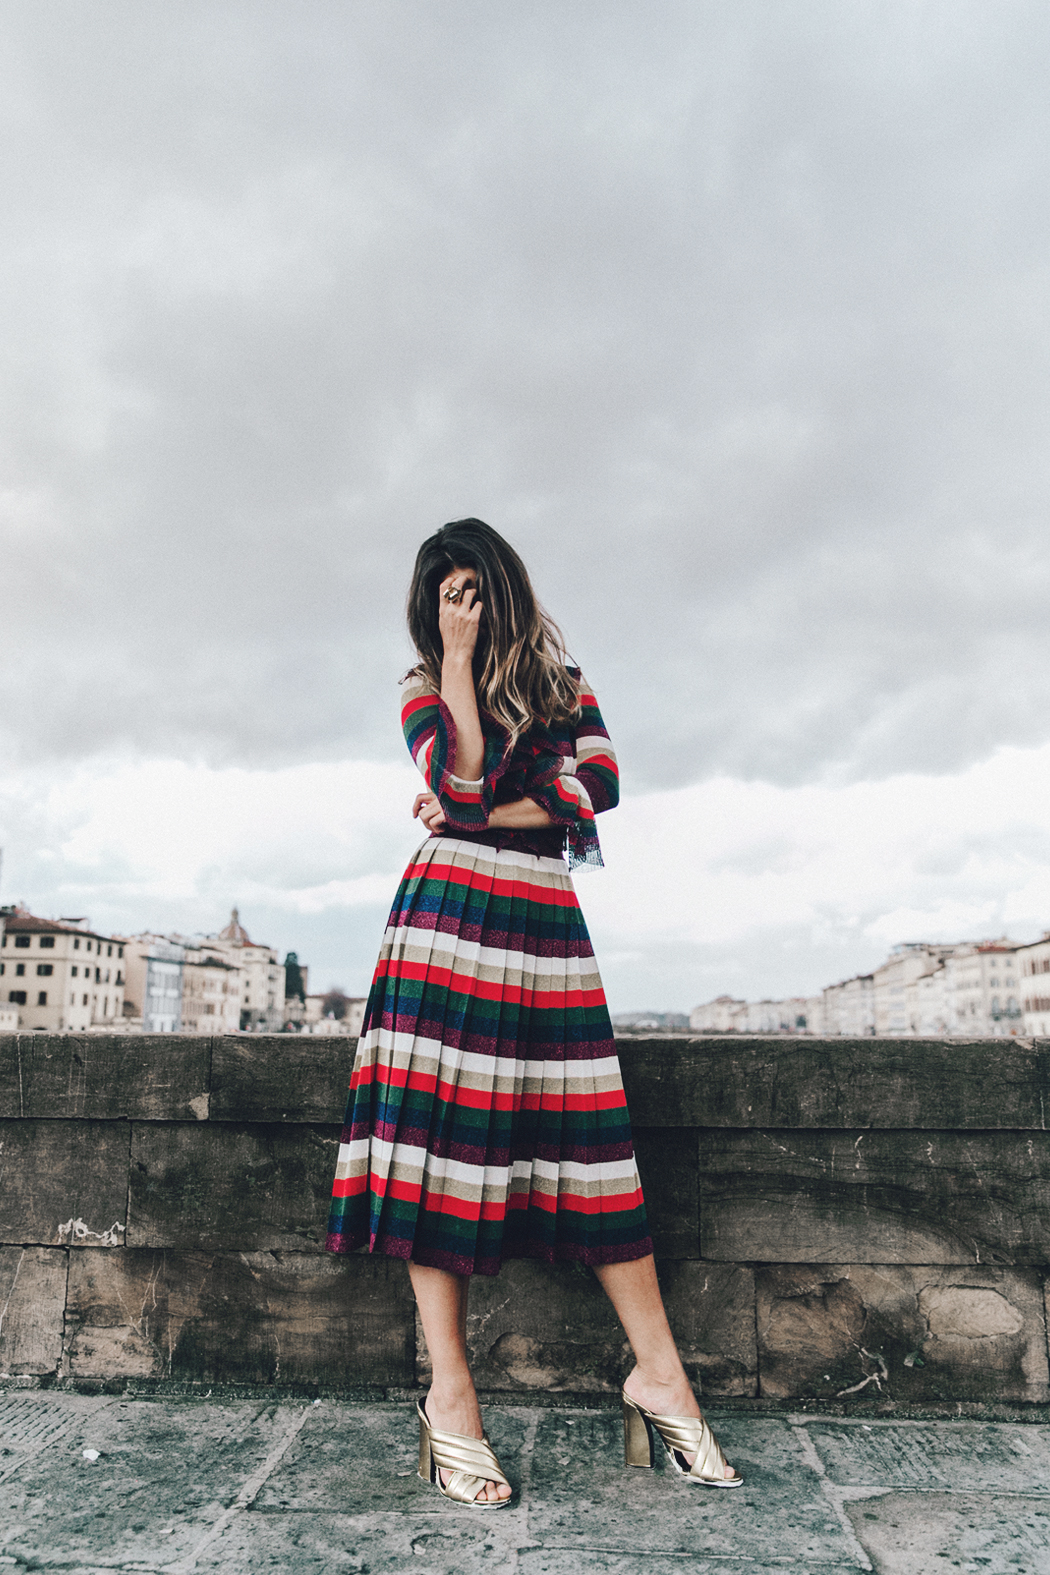 Firenze4Ever-Luisa_VIa_Roma-Gucci_Striped_Dress-Gucci_Gold_Sandals-Outfit-Florence-Street_Style-49